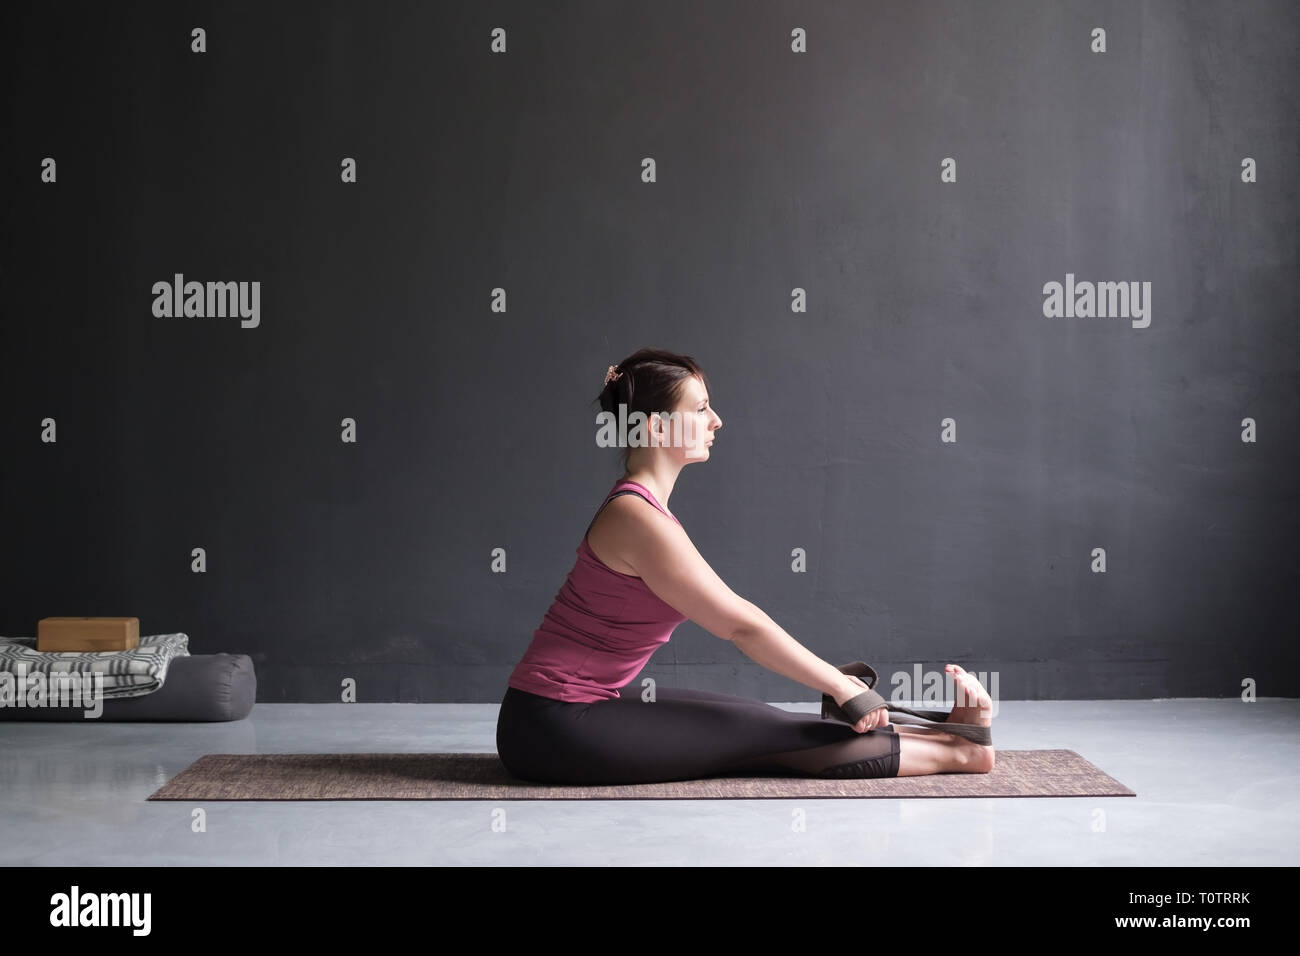 woman practicing yoga, Seated forward bend pose - Stock Image